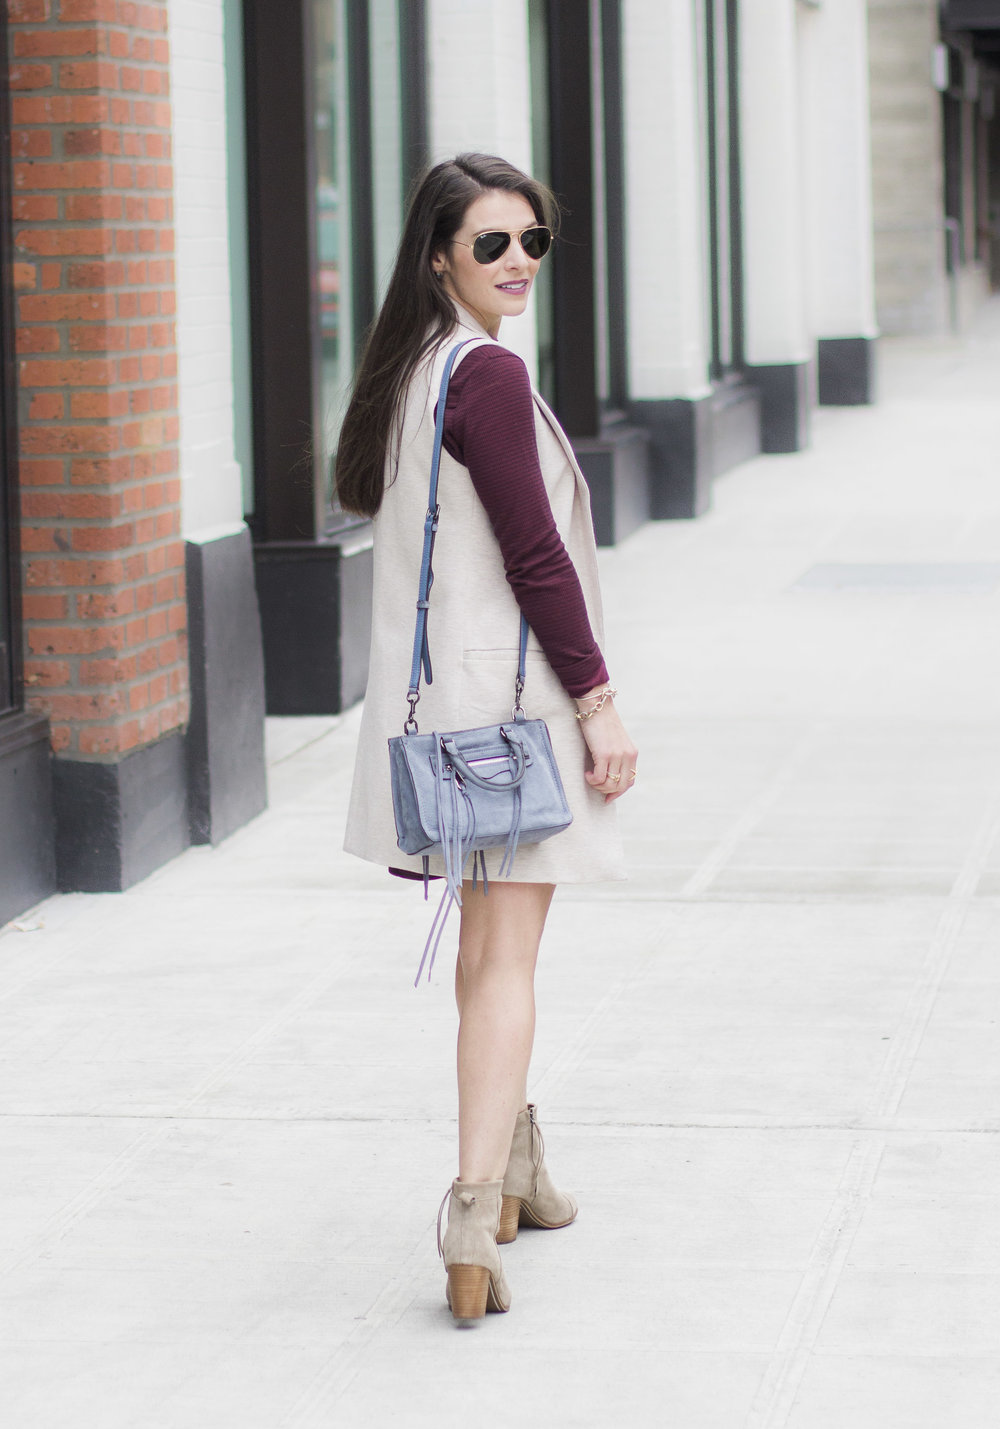 Casual Weekend Outfit for Fall, Leith Stretch Ponte Long Vest, Vans Charlie Dress, Toms Lunata Booties, Rebecca Minkoff Micro Regan Satchel, Ray-Ban Aviator Sunglasses, and Gold Lariat Necklace.